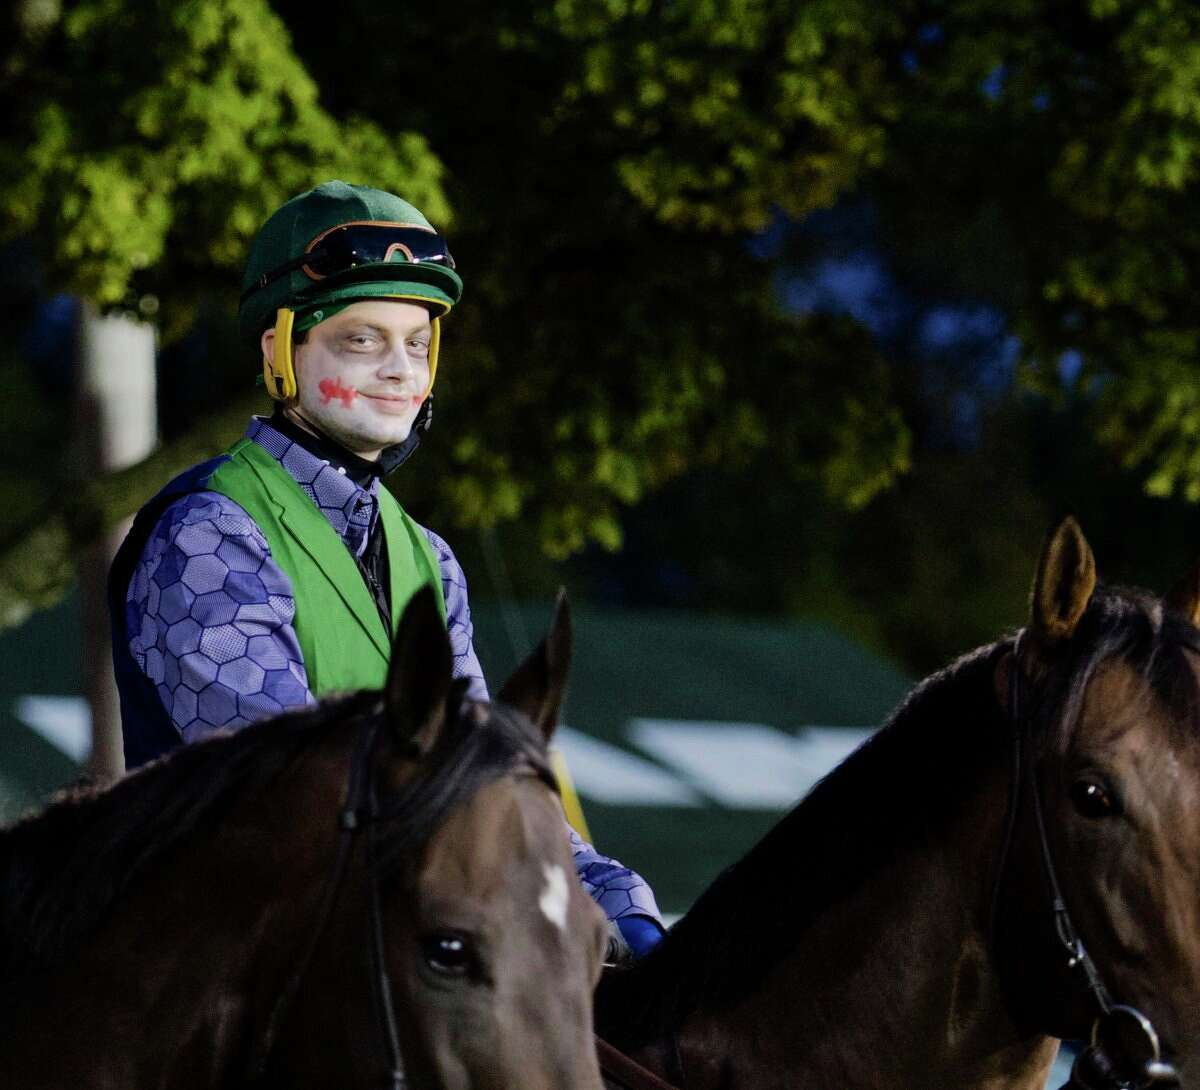 Halloween arrived before sunrise Tuesday at Churchill Downs in Louisville, Ky. Exercise riders Tara Lee and Brody Wilkes galloped in for training dressed up as comic book characters Catwoman and the Joker.